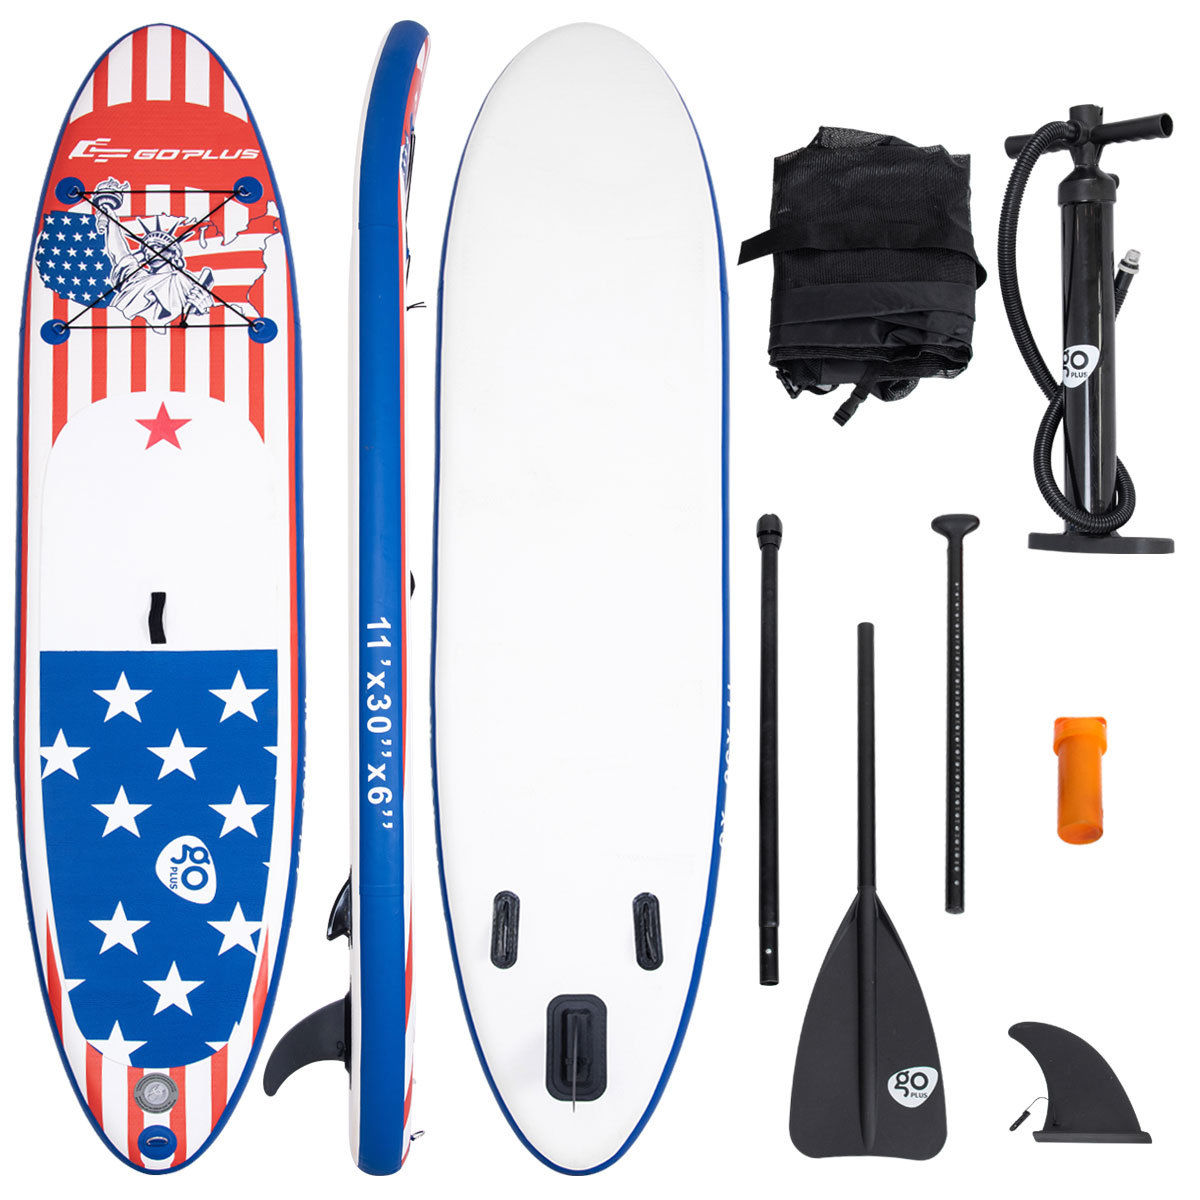 Goplus 11' Inflatable Stand Up Paddle Board SUP W  Fin Adjustable Paddle Backpack Sport by Costway